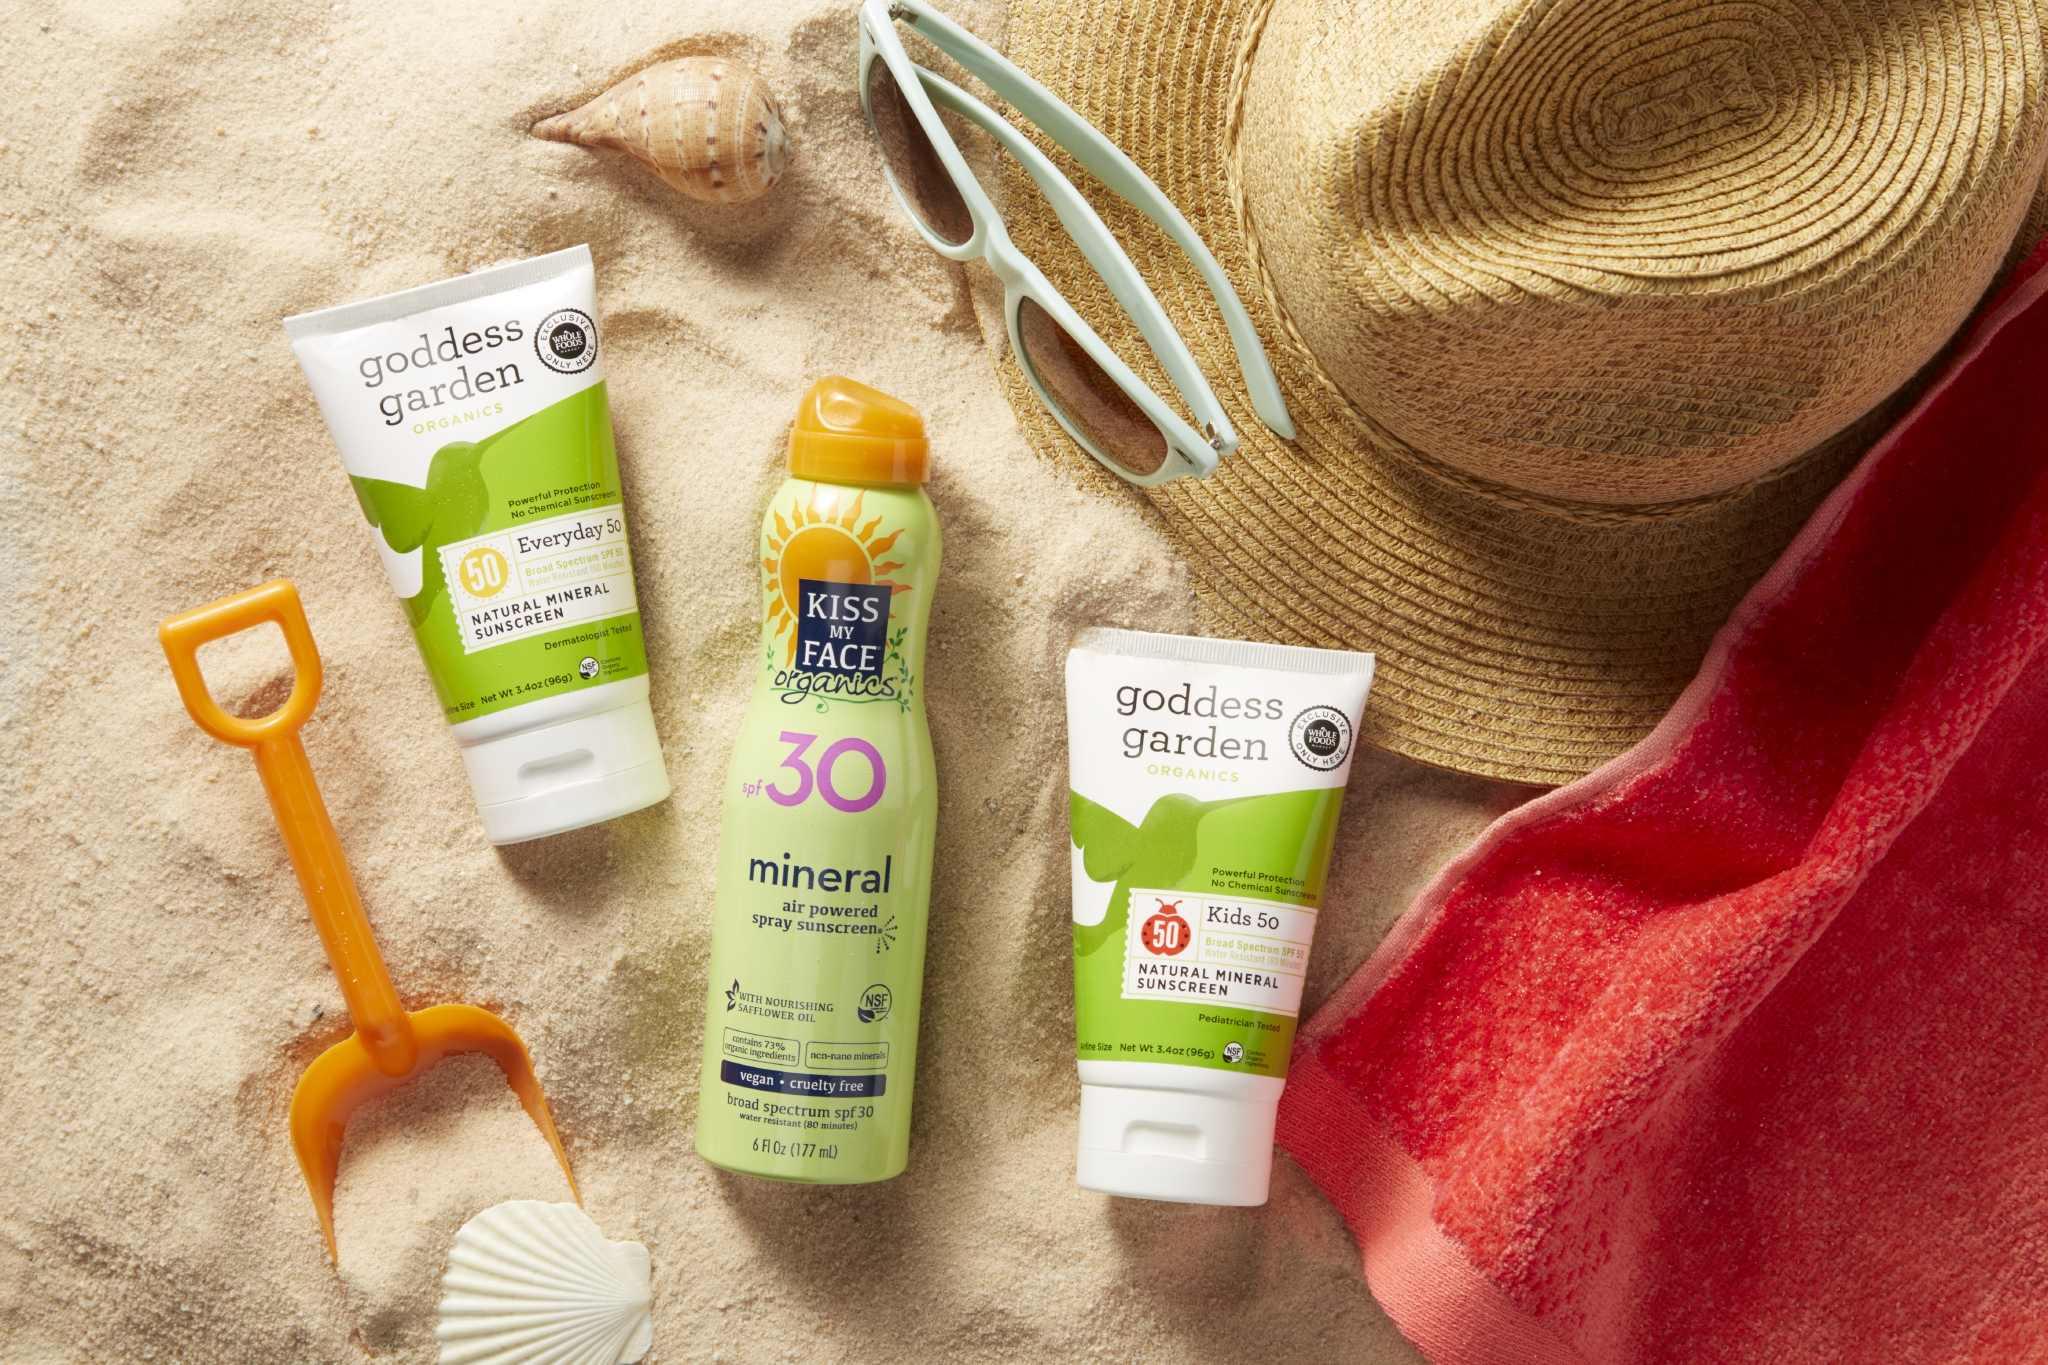 sunscreens in sand